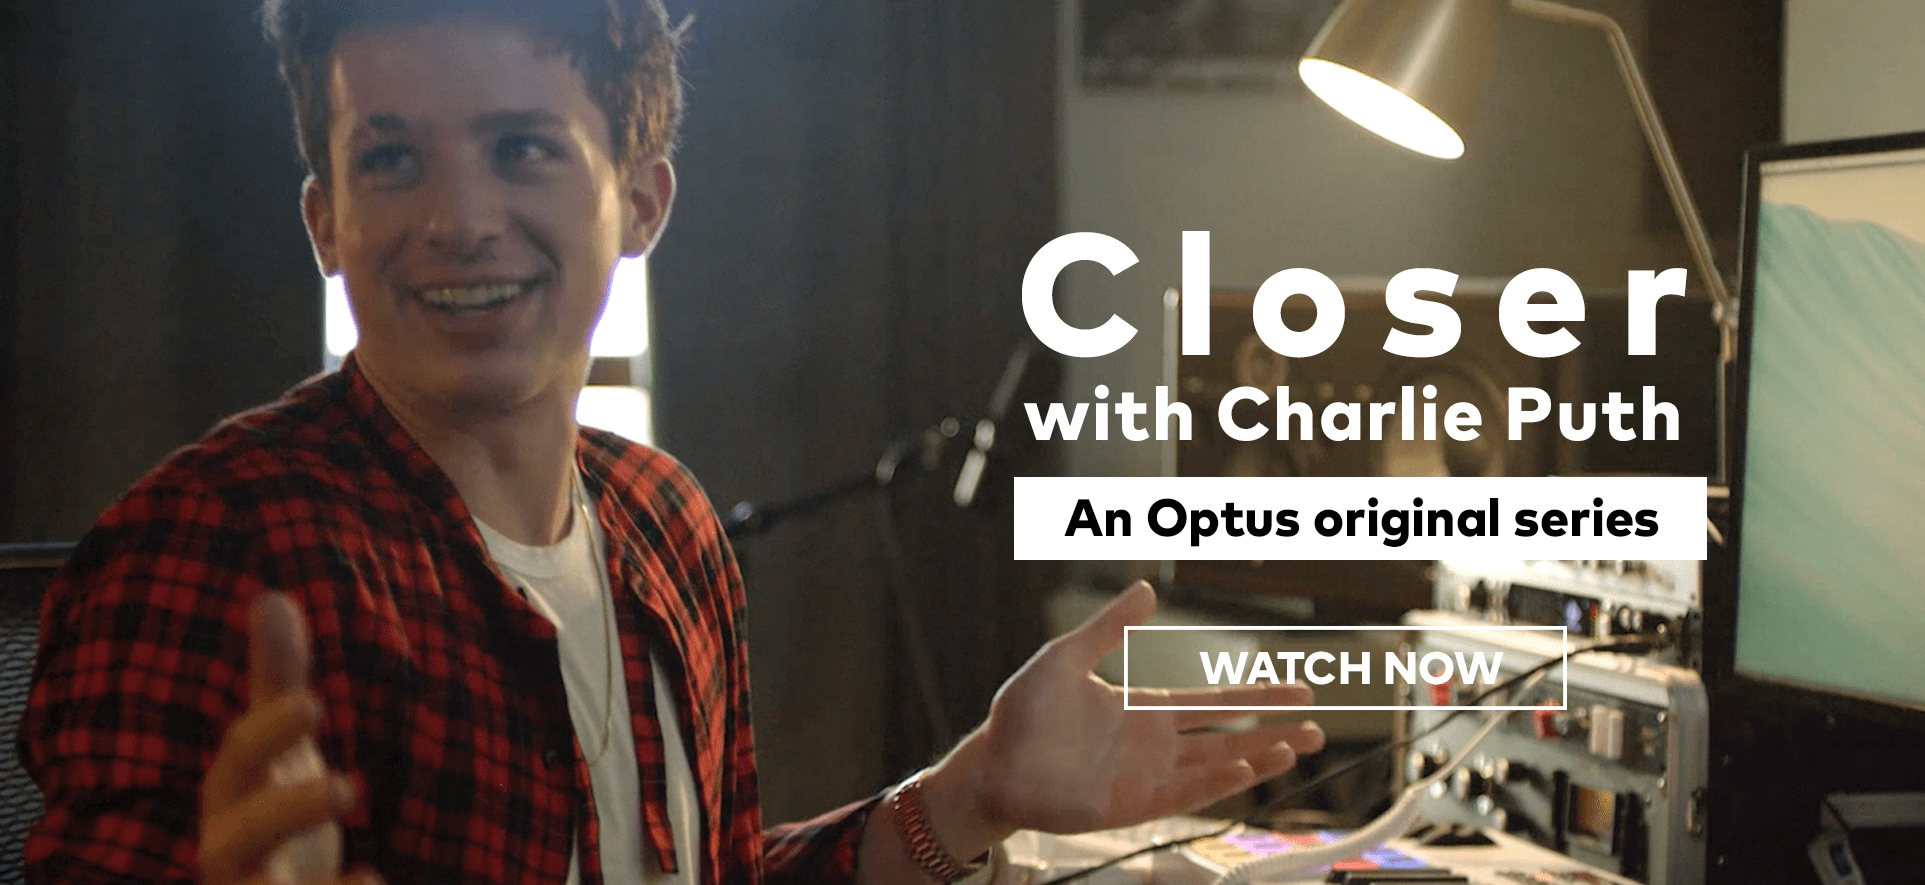 Closer with Charlie Puth: An Optus Original Series